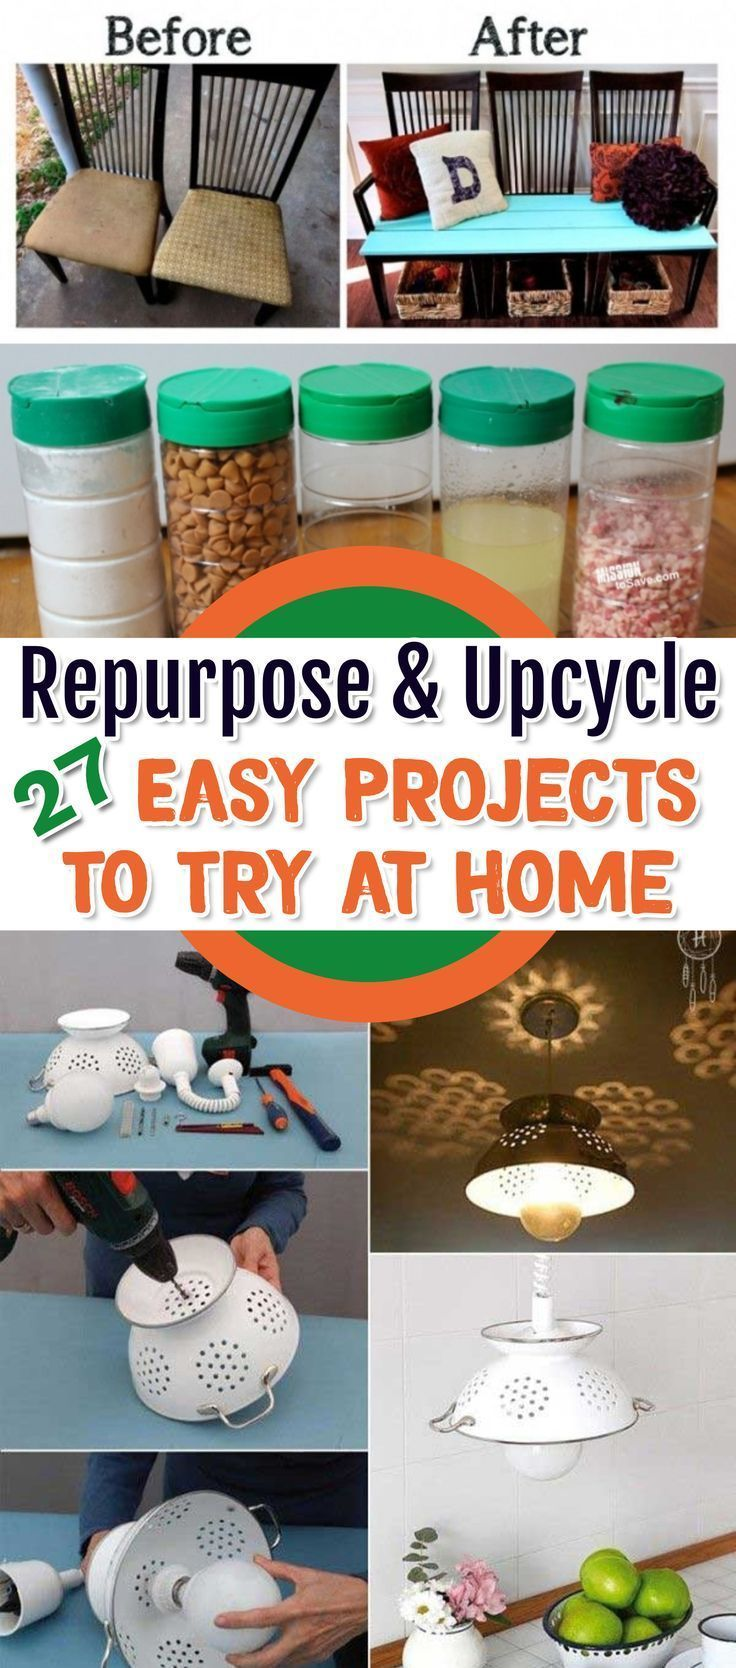 33+ Diy crafts with household items information